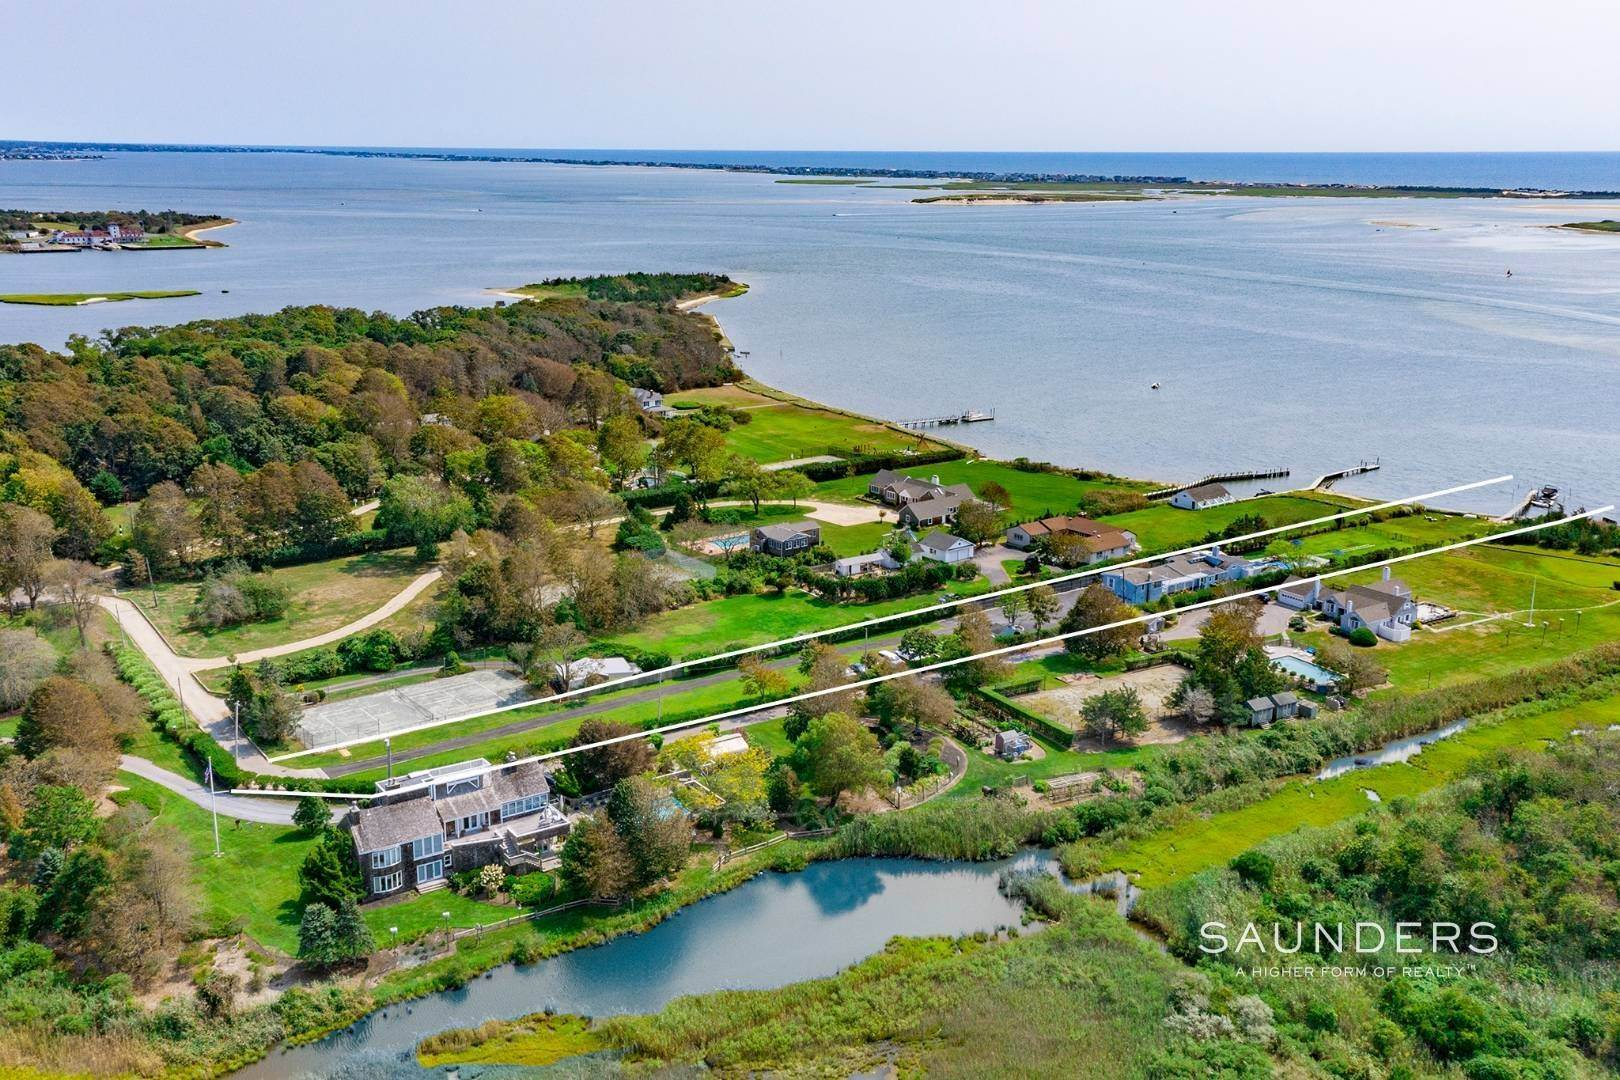 Multi-Family Homes for Sale at Beach Front With Views Of Dune Road And The Moriches Inlet 50 Tuthill Point Road, East Moriches, Hamptons Fringe, NY 11940